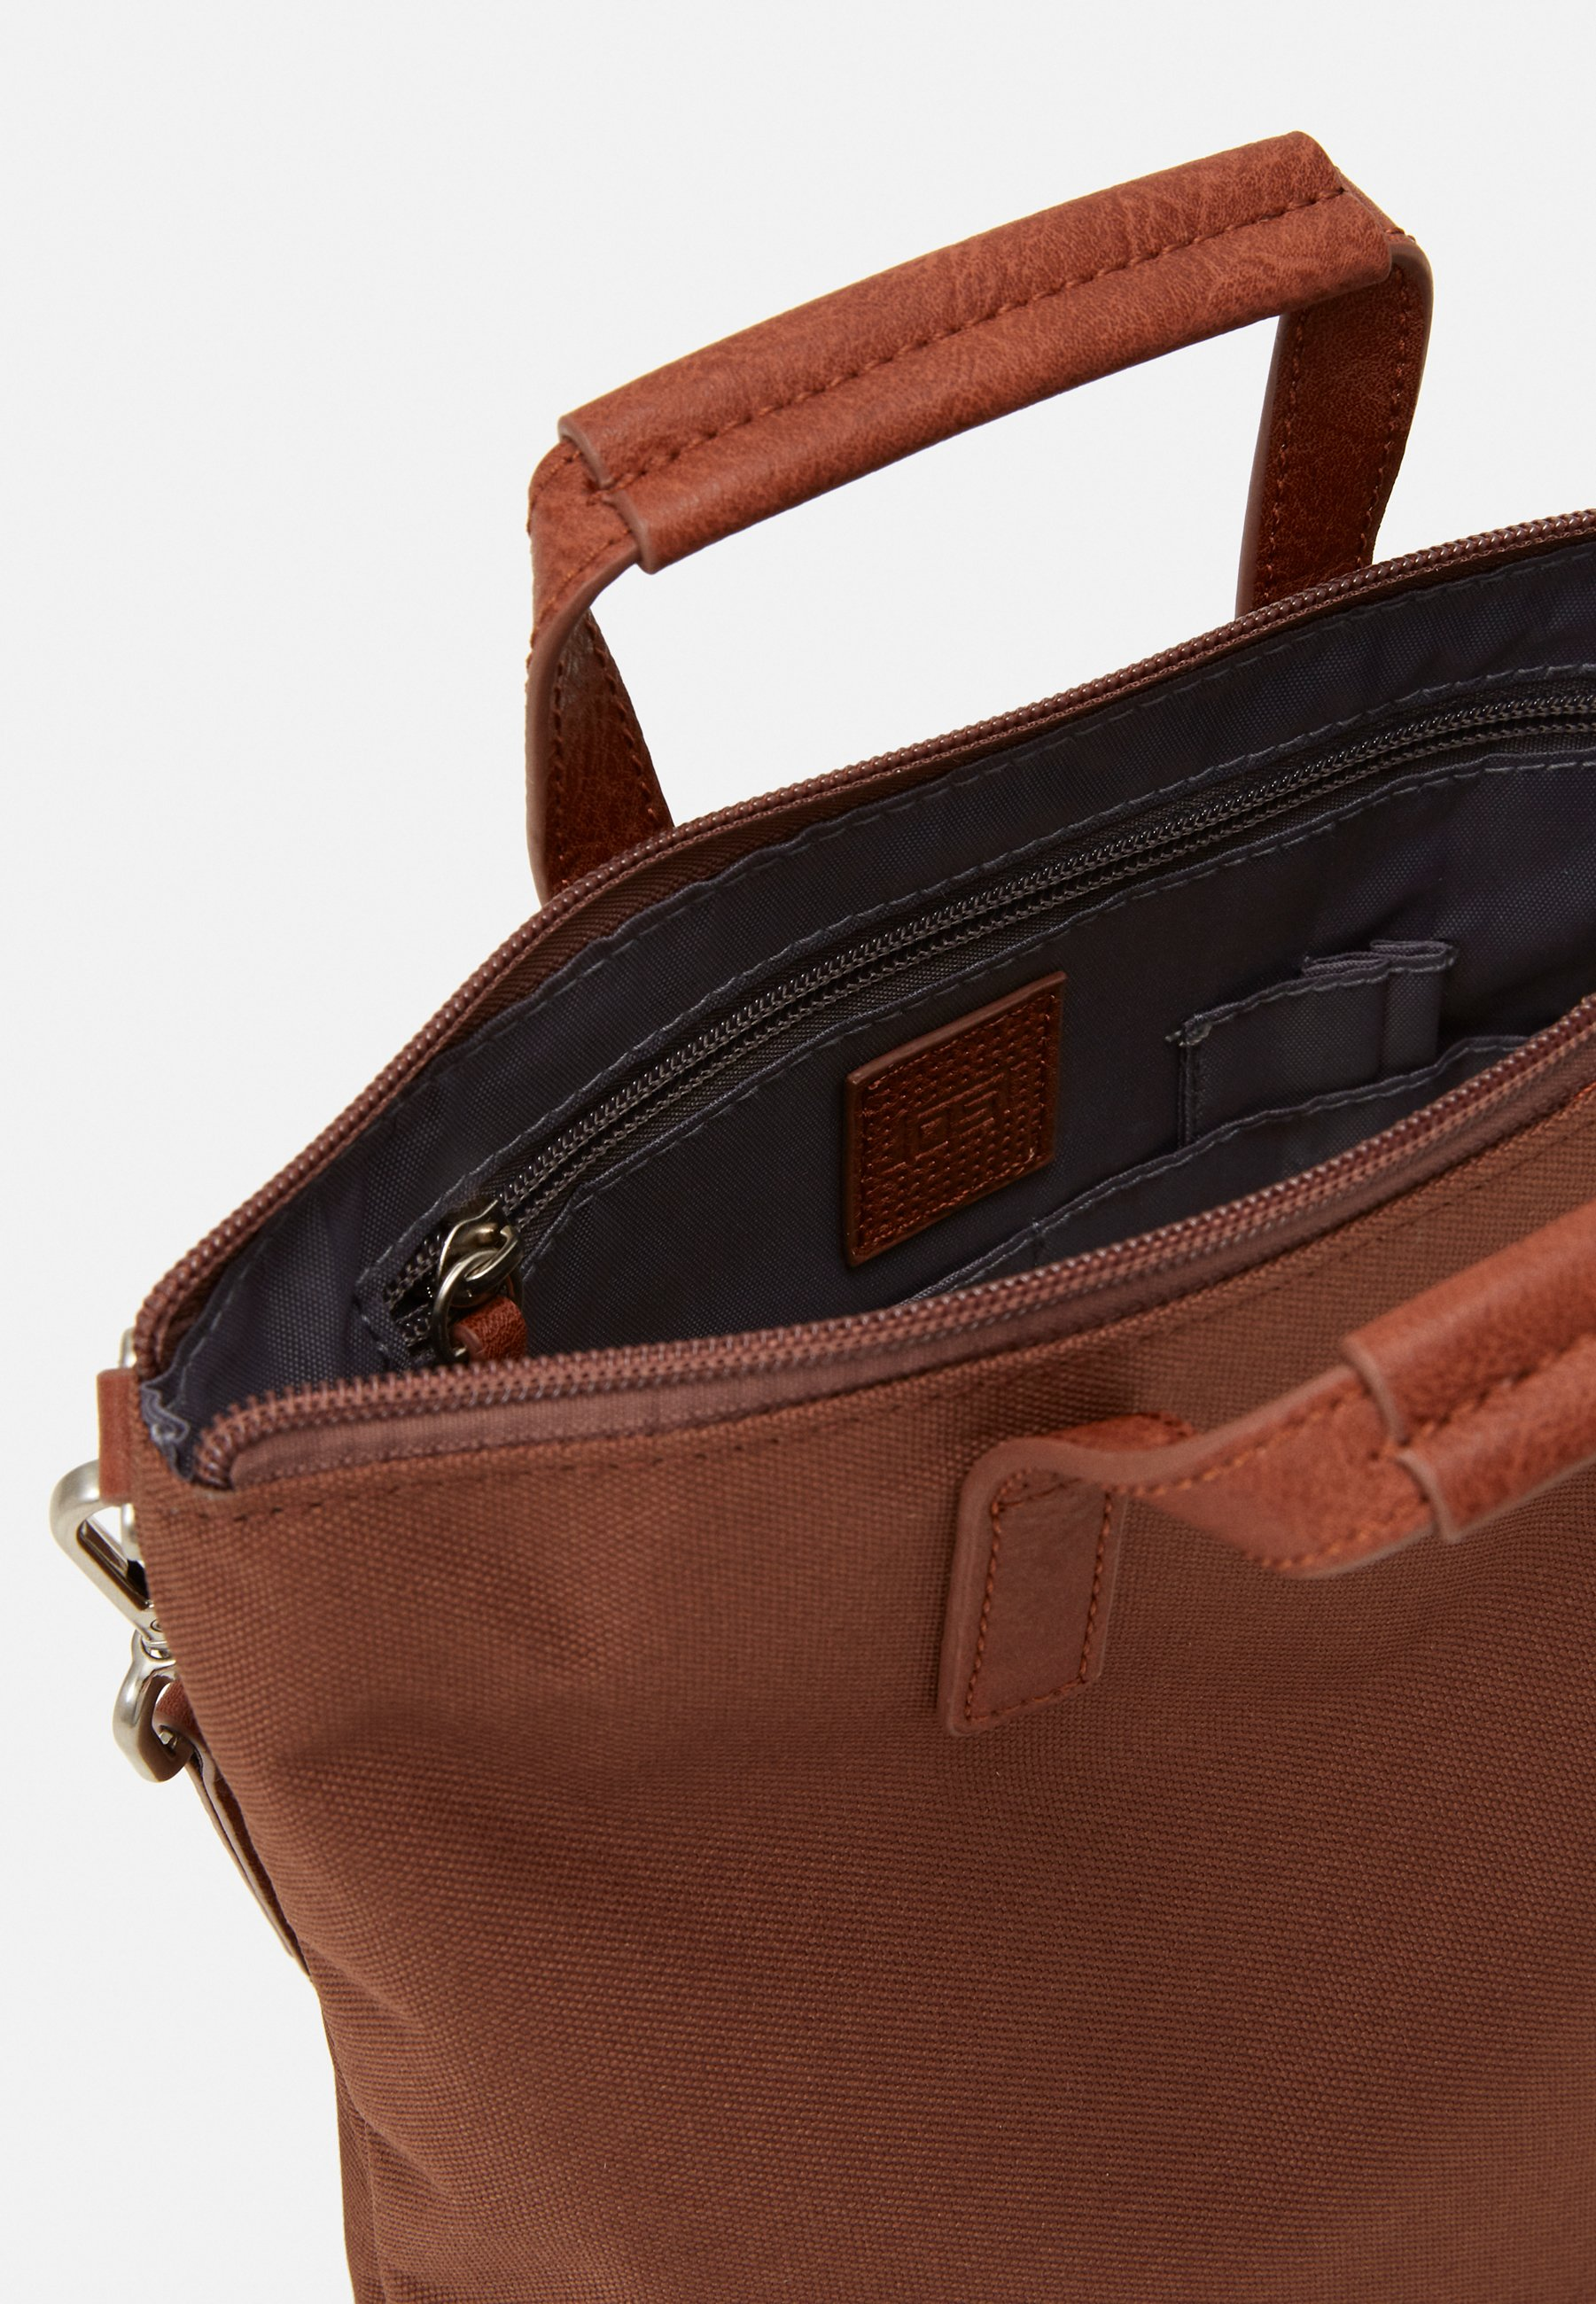 Jost X CHANGE BAG MINI - Håndveske - brown/brun vAO3A3t8vk90y8o